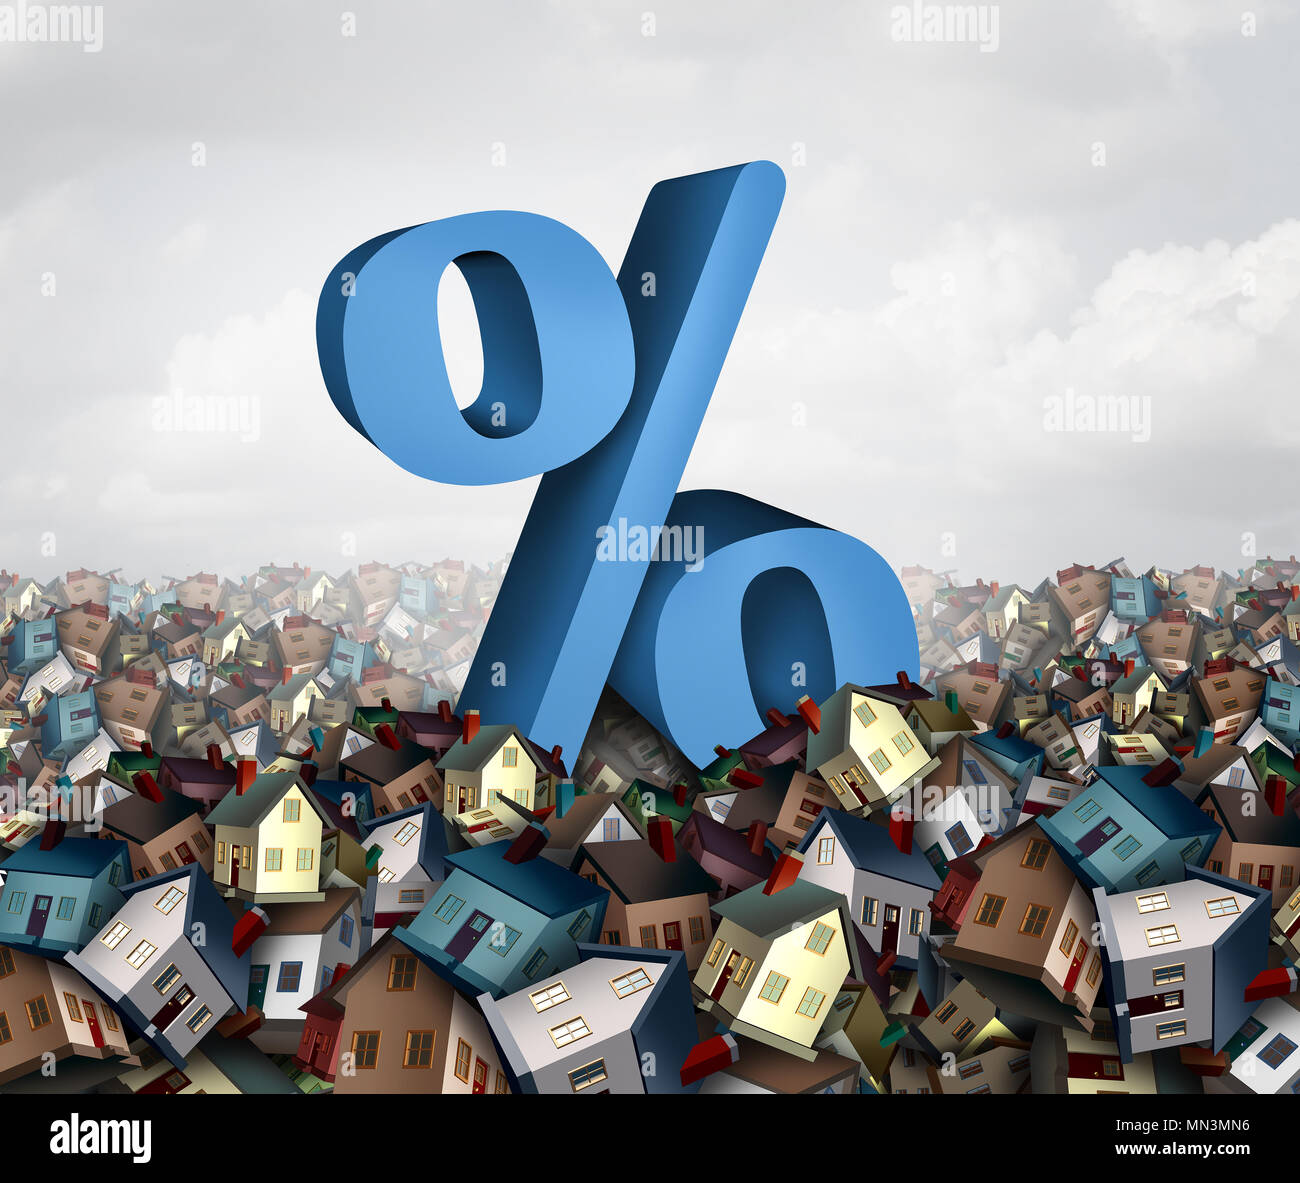 Home interest rates and housing bubble financing as a percentage sign in a flood of homes as a banking housing loan concept as a 3D illustration. - Stock Image